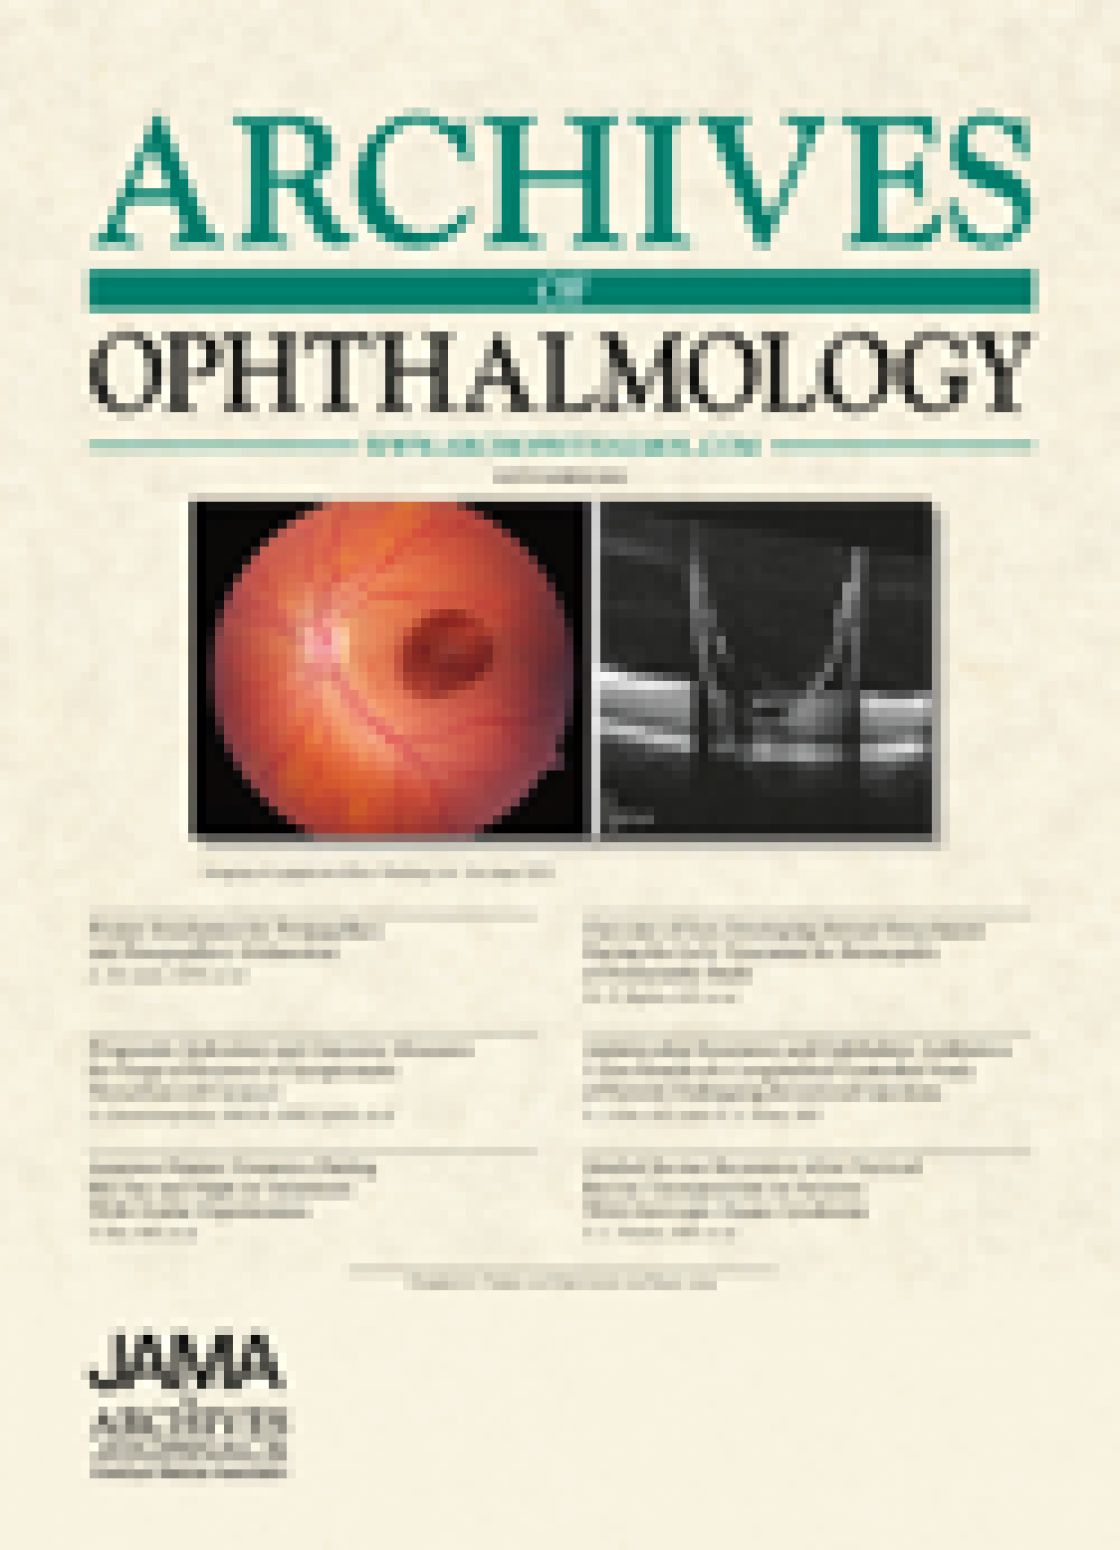 Optical coherence tomography for optic disc edema